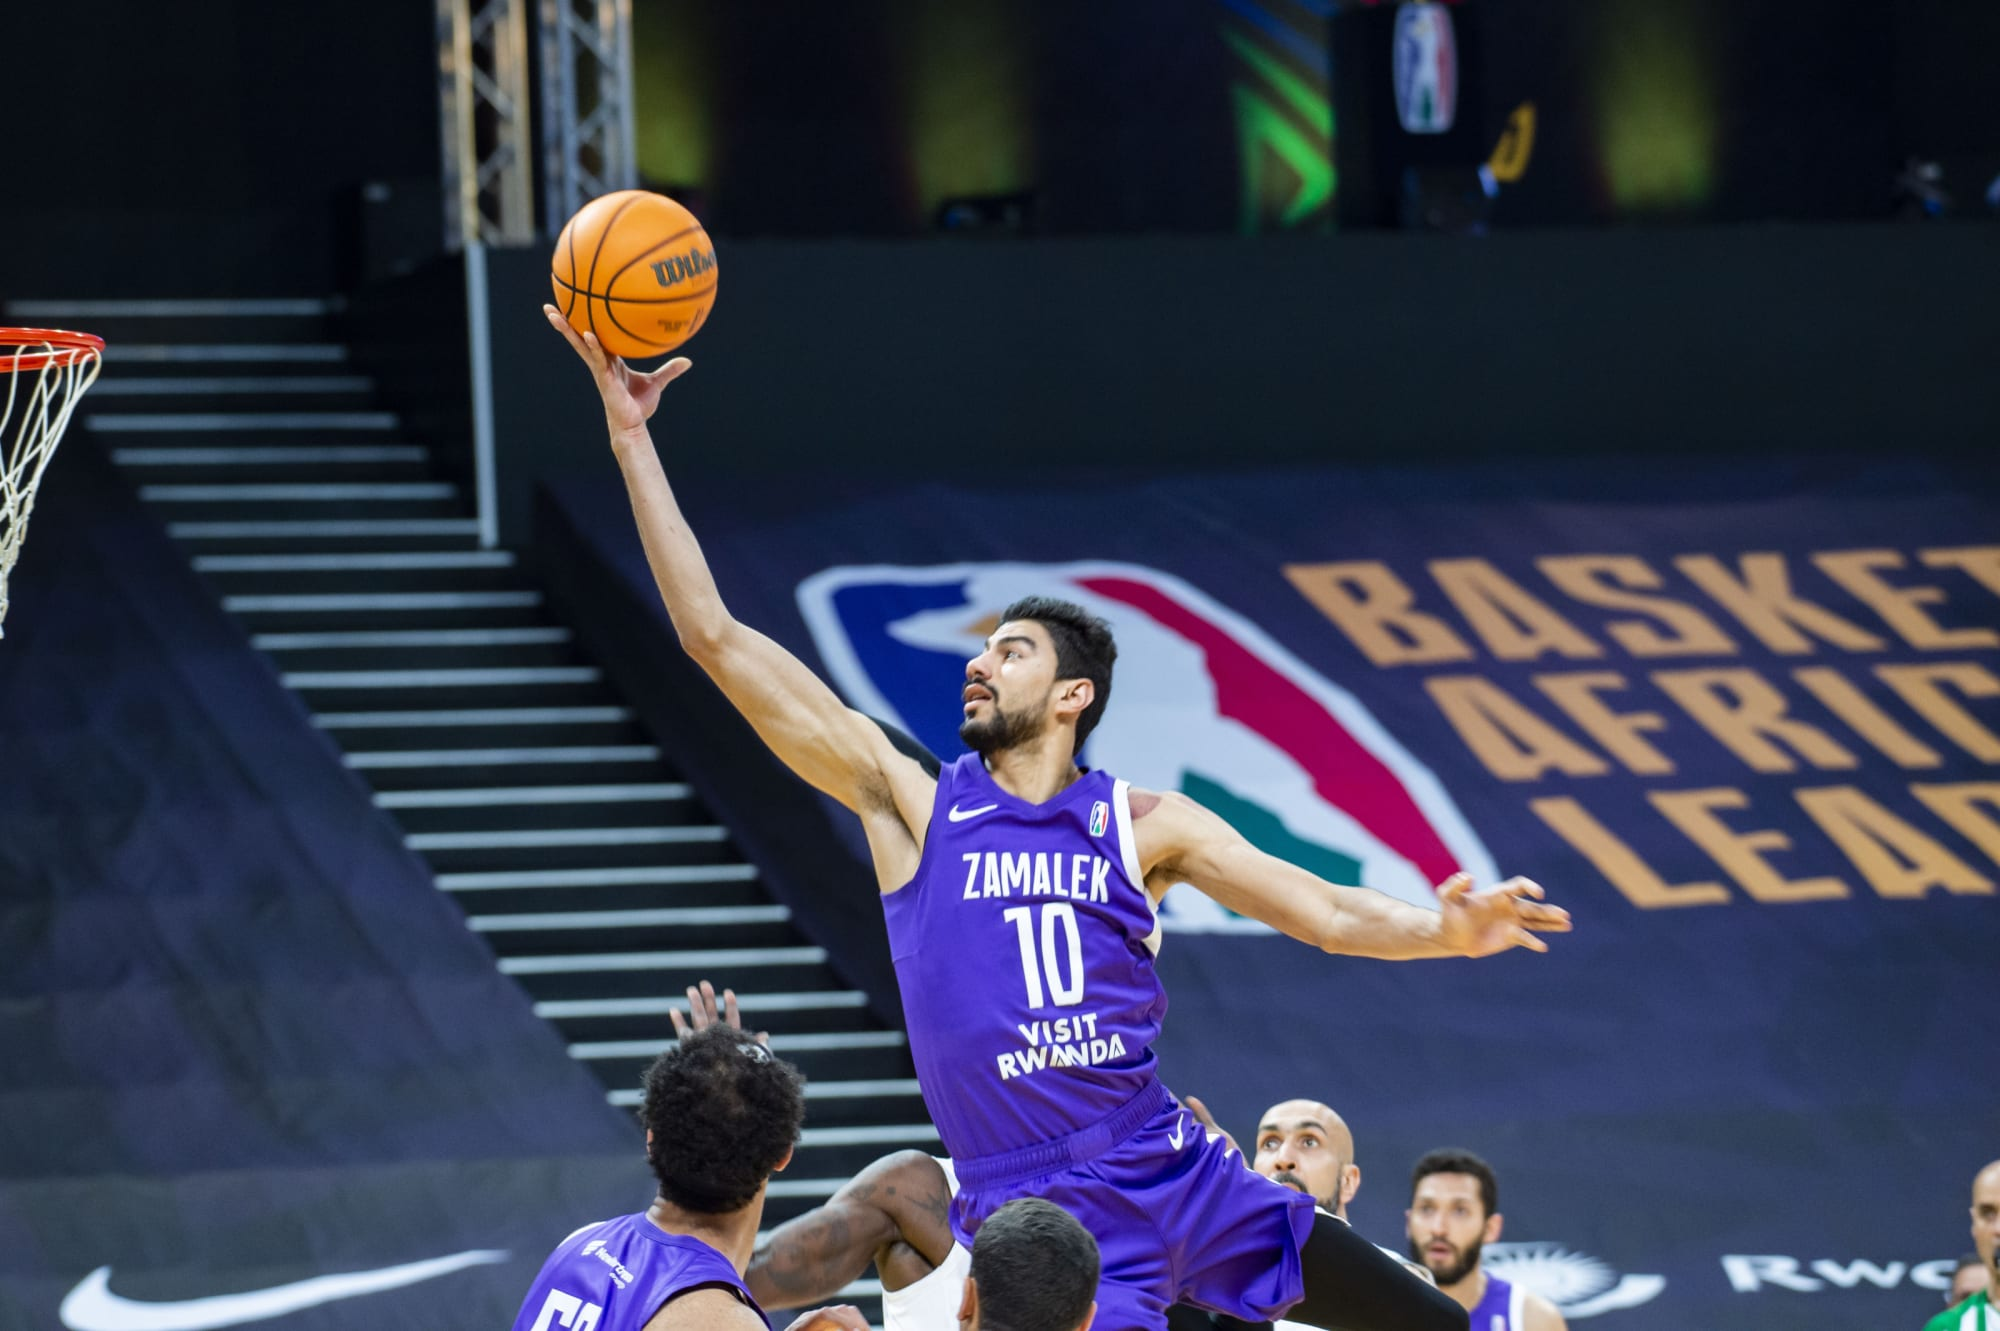 Toronto Raptors: Can Anas Mahmoud carve out a role in the NBA?